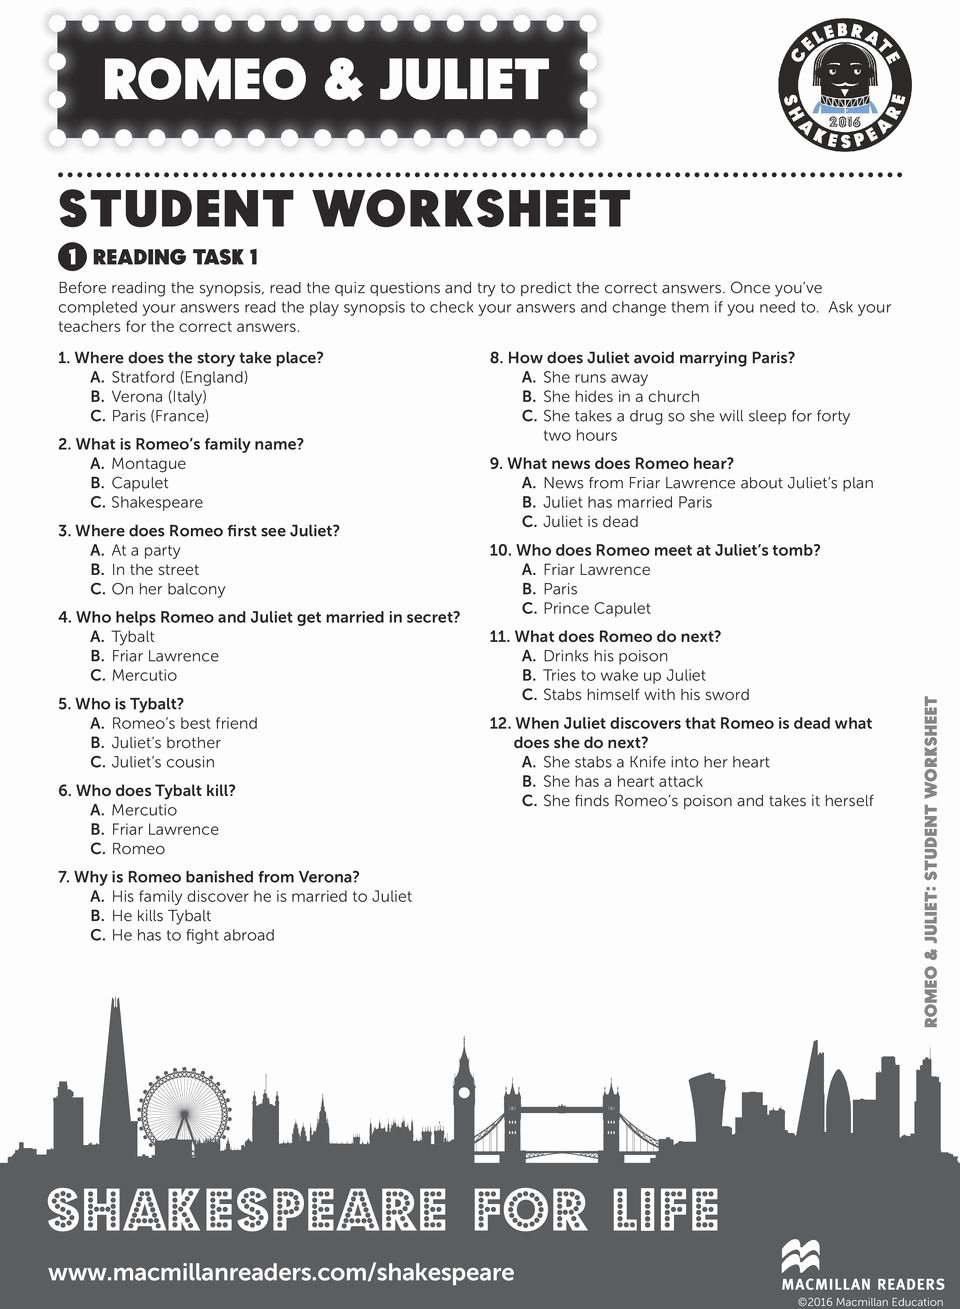 Romeo and Juliet Worksheet Best Of Romeo & Juliet Student Worksheet 1 Reading Task 1